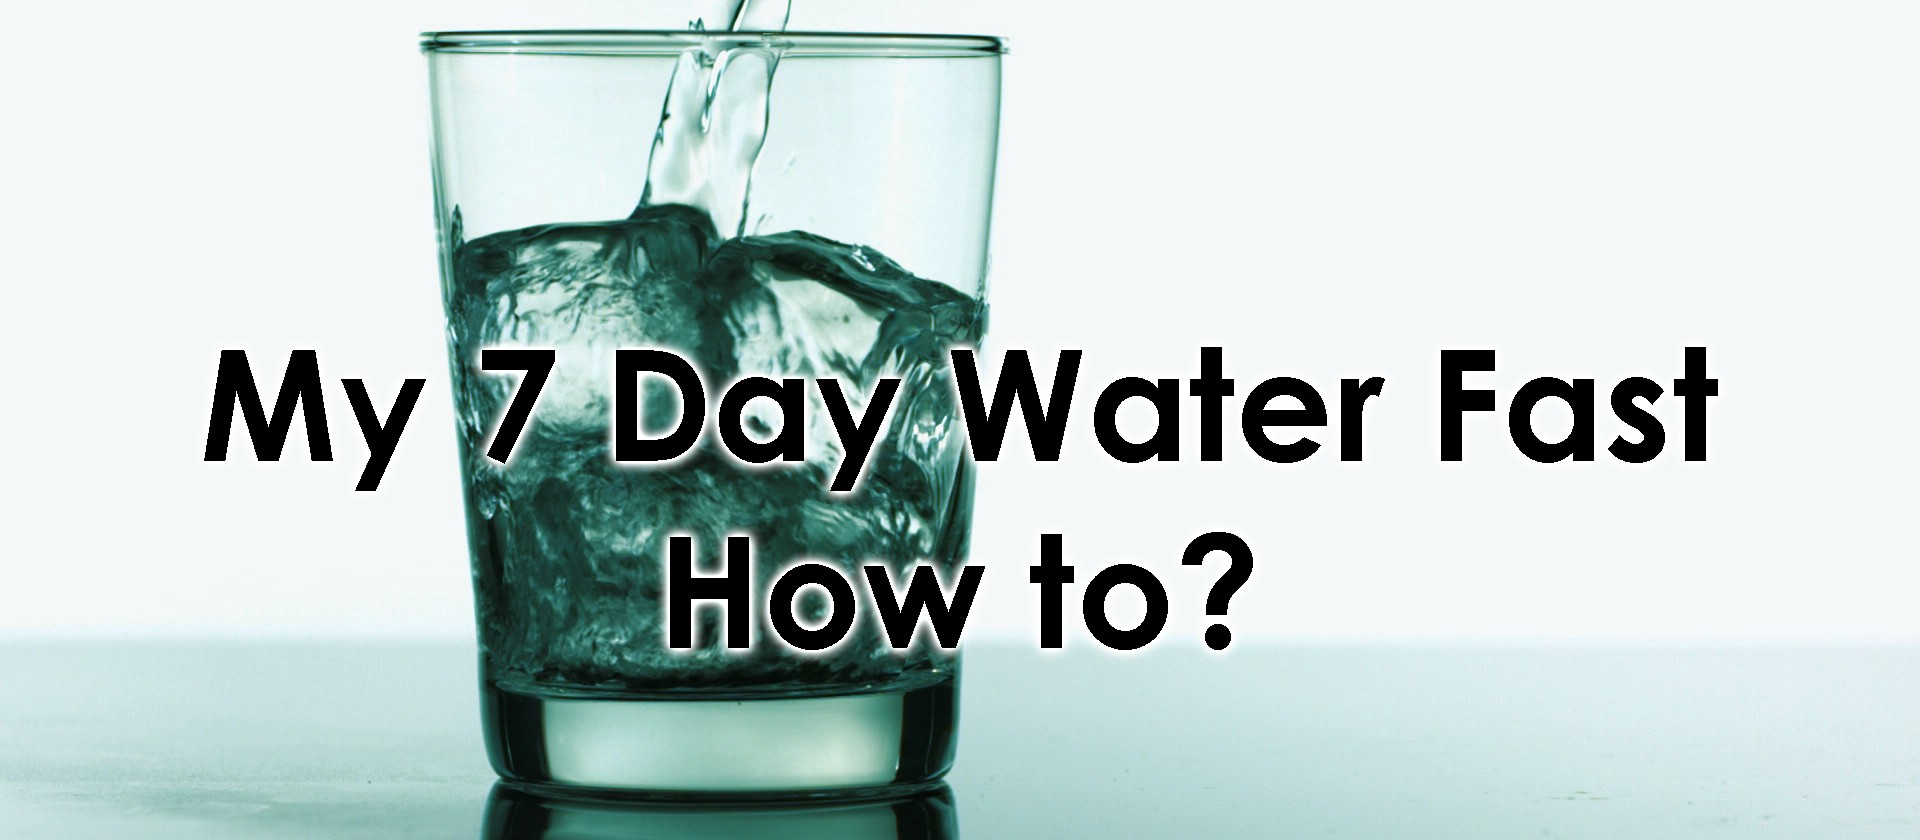 My 7 Day Water Fast — Part 2 — How to? - Marko Zelman - Medium